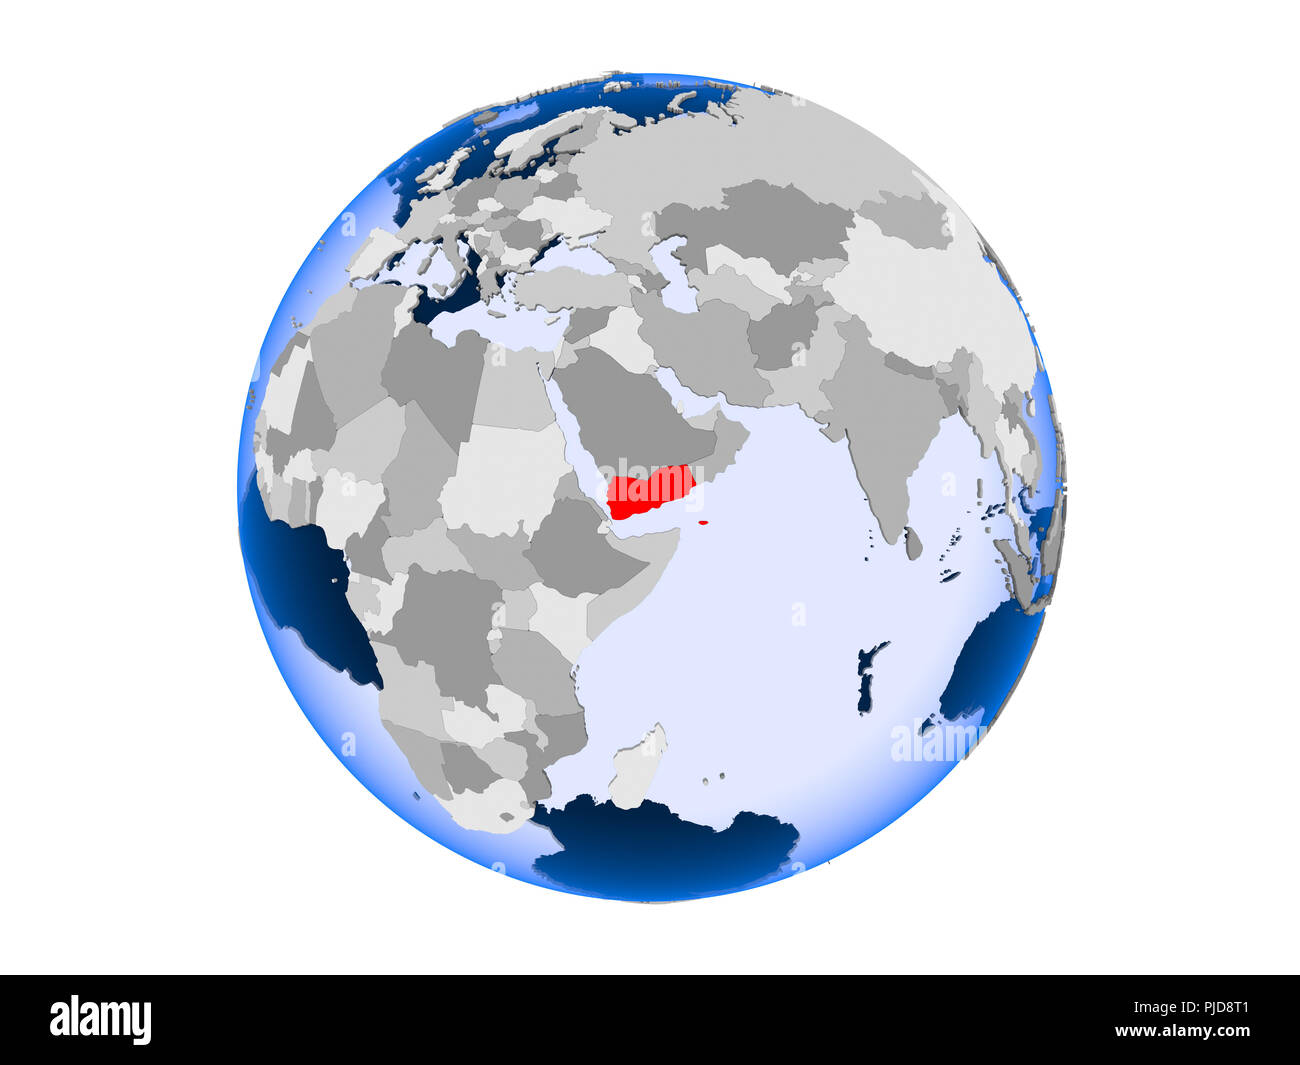 Yemen highlighted in red on political globe with transparent oceans. 3D illustration isolated on white background. - Stock Image